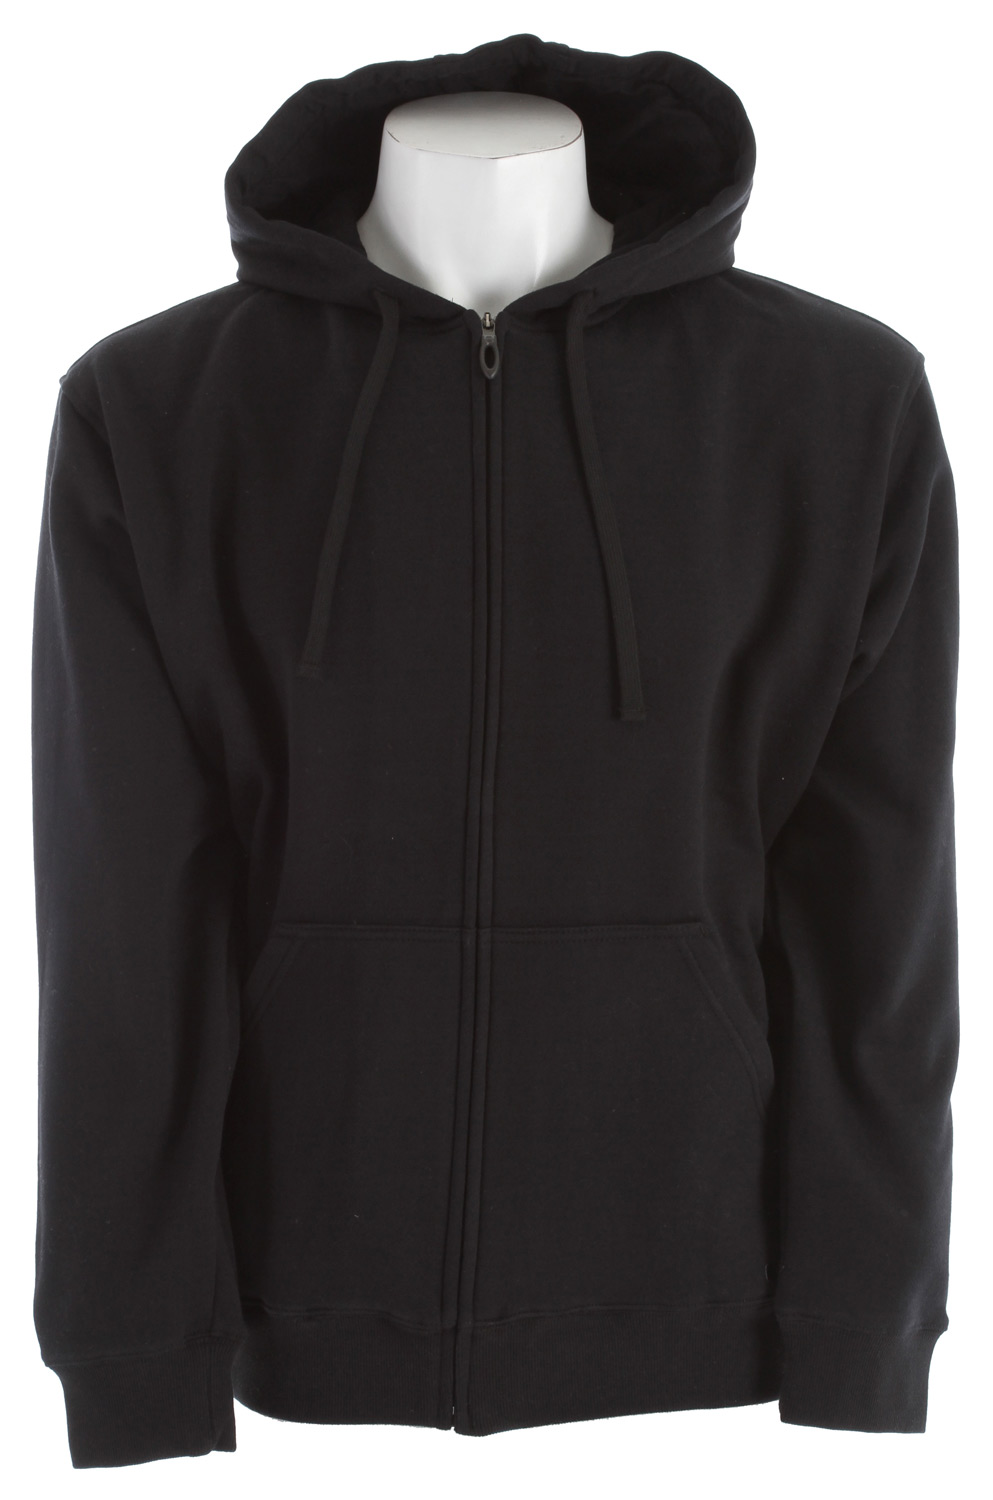 Full zip hoody with marsupial hand pockets and front & back embroideries.Key Features of the Oakley Square O Hoodie: 80% cotton, 20% polyester 240g - $31.95